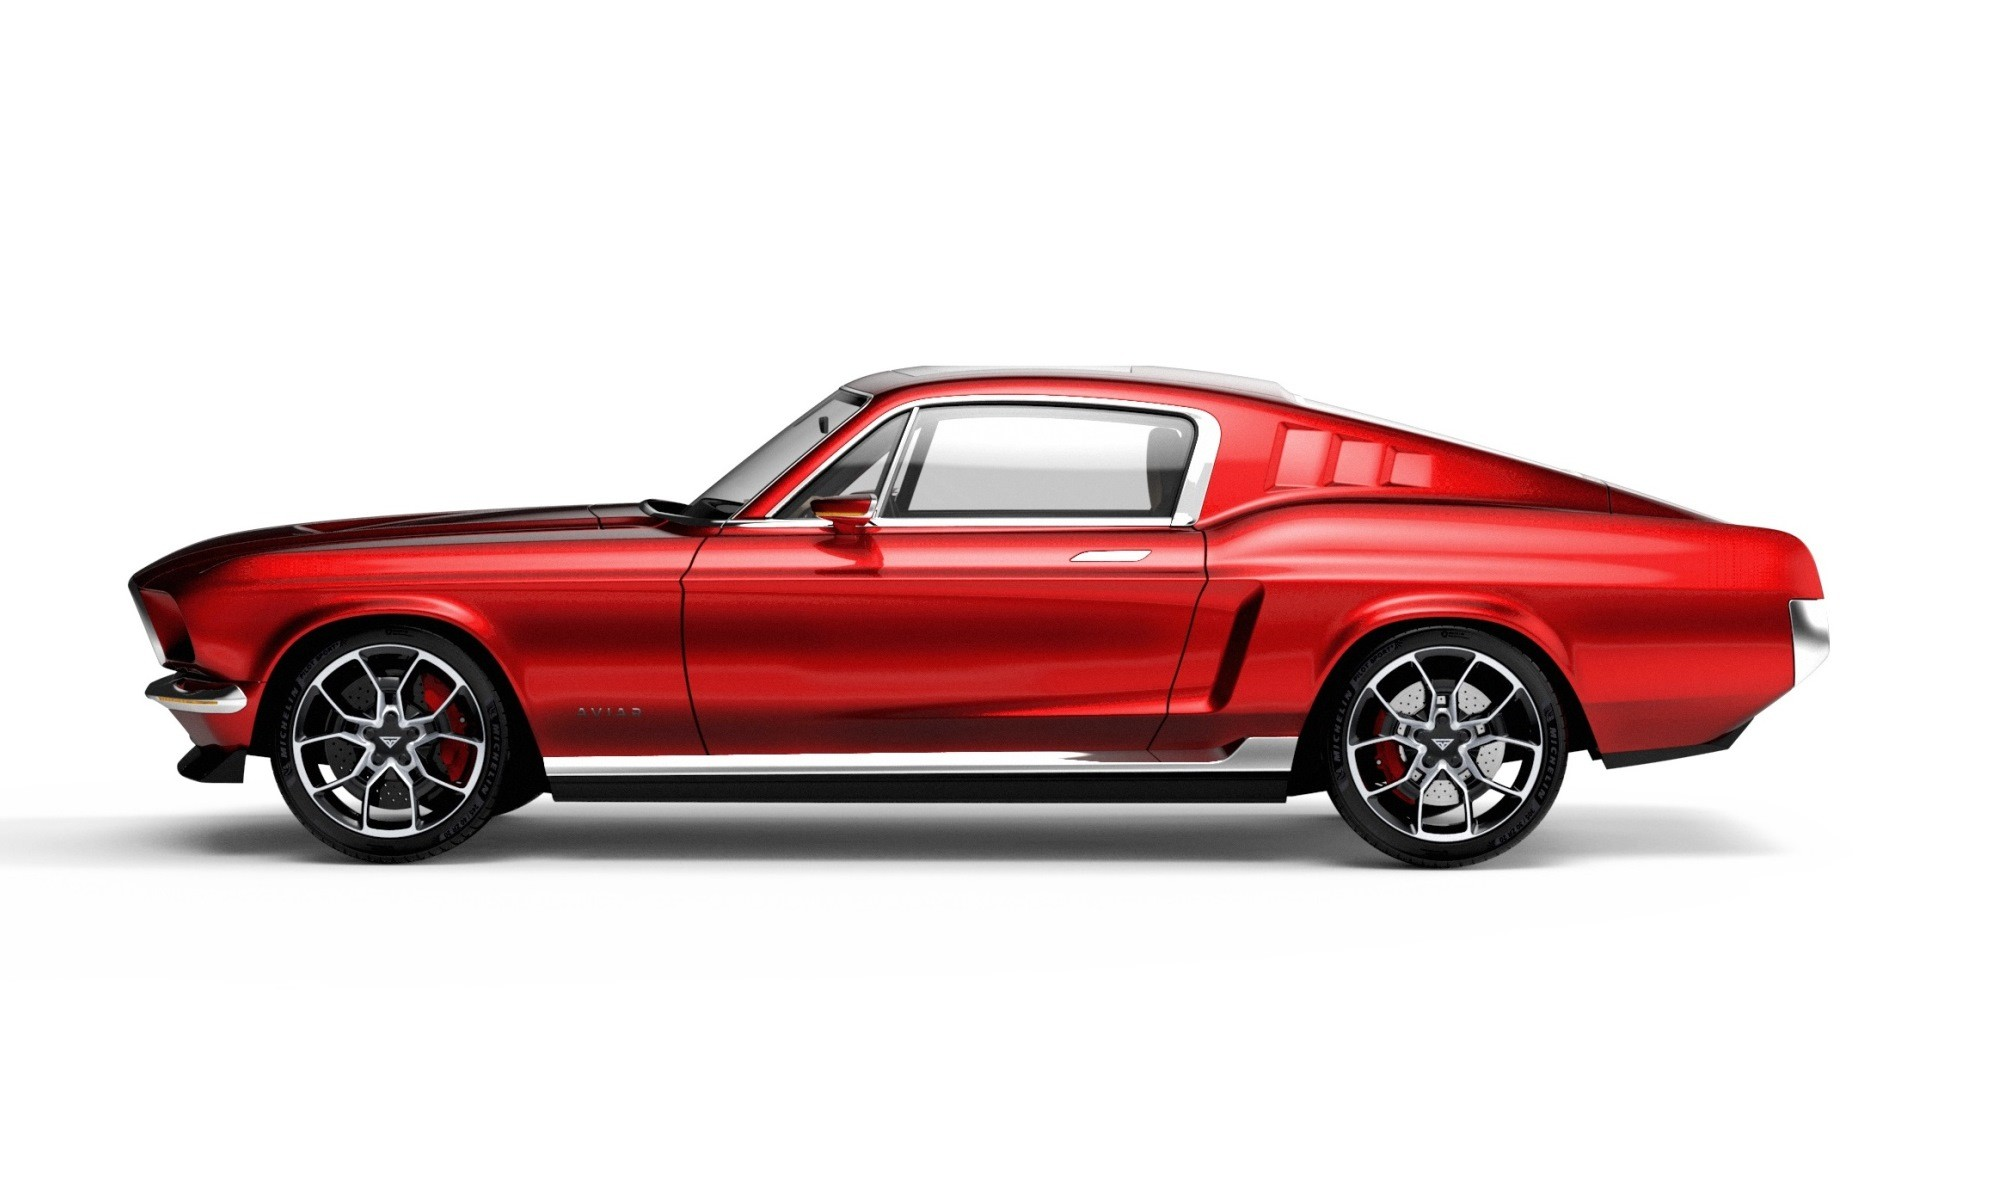 Aviar R67 Electric Mustang Is An Electric Muscle Car From